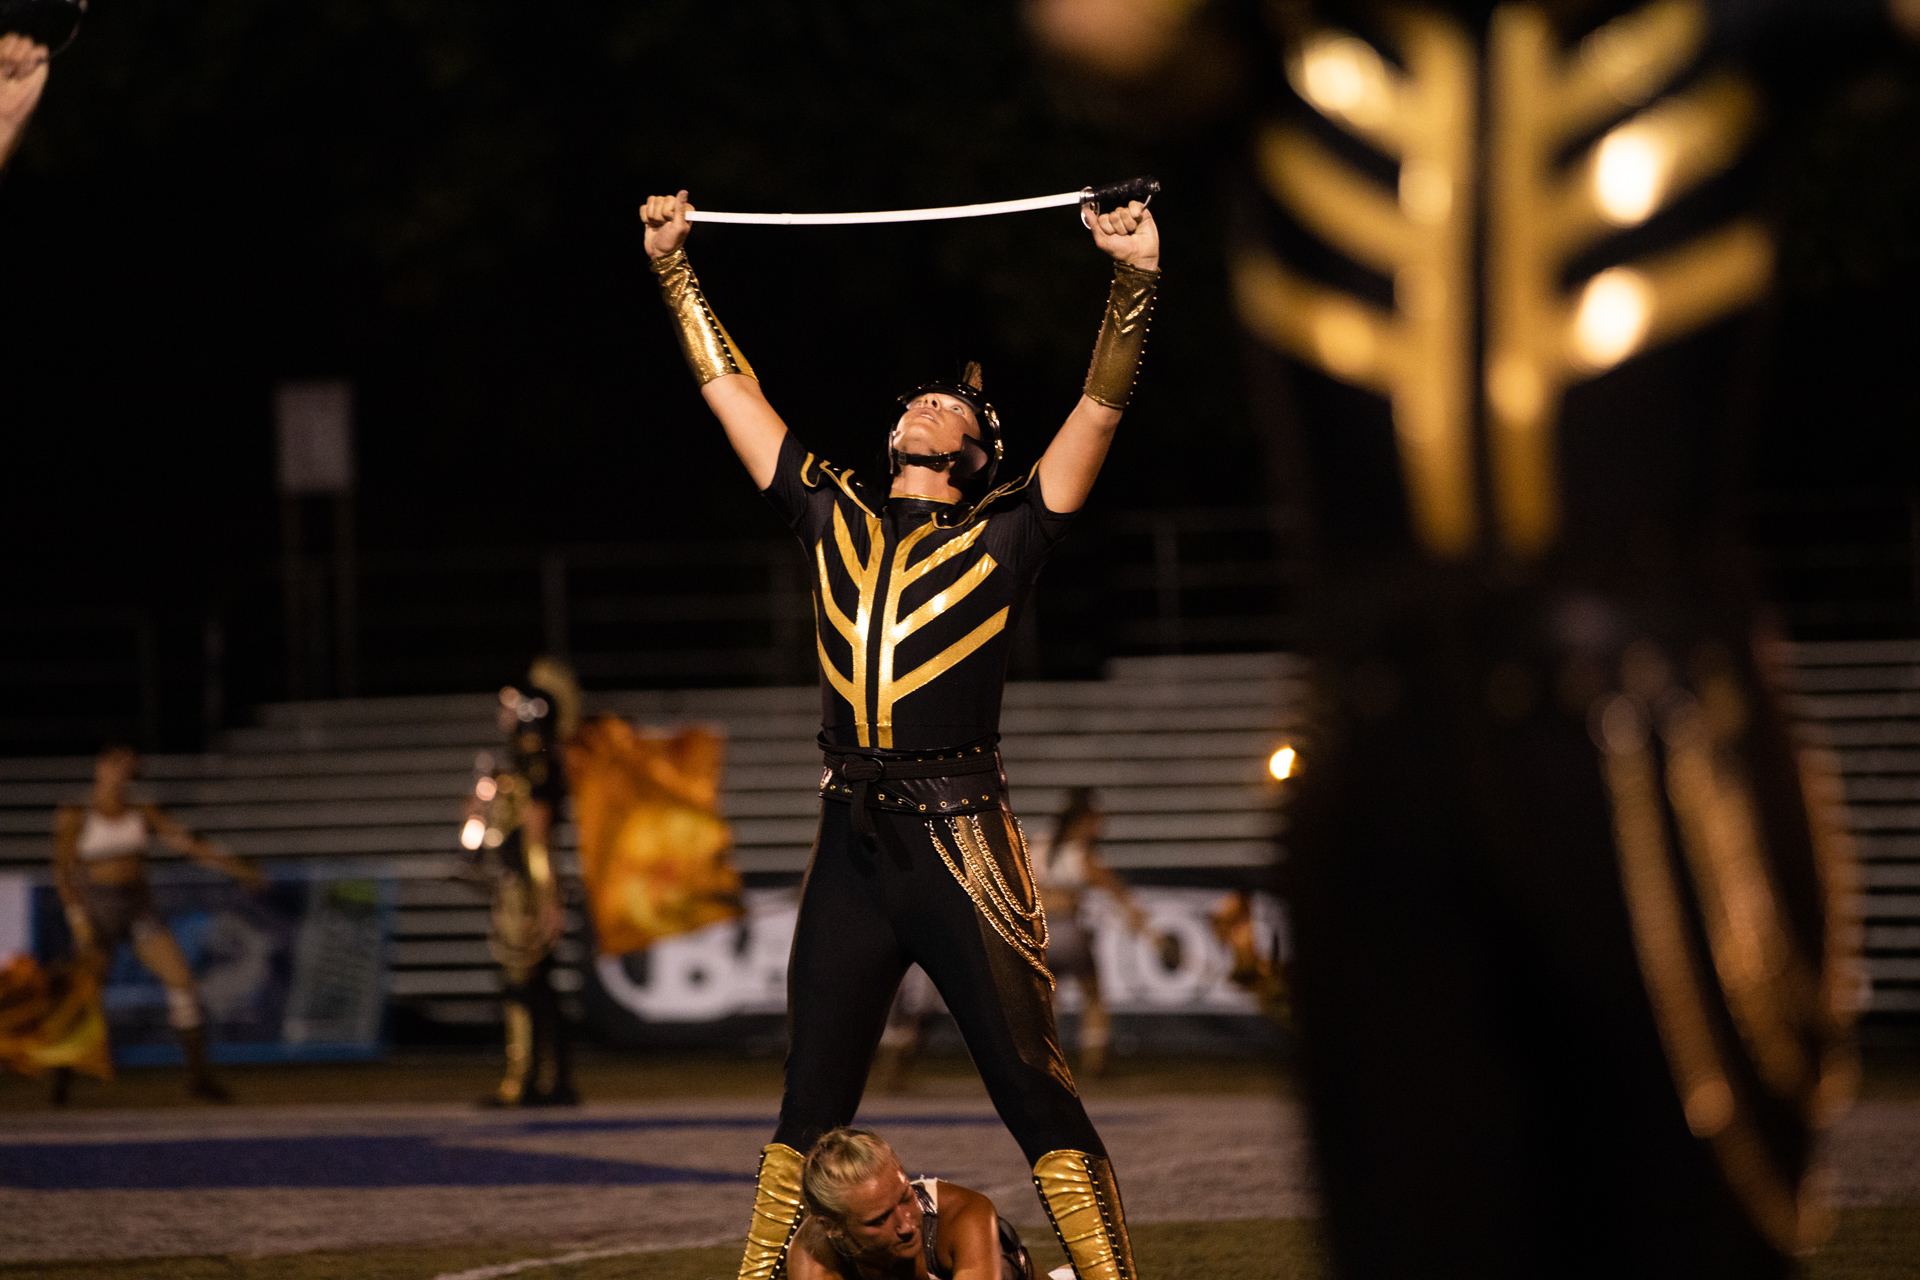 07 - BostonCrusaders2019_Goliath (4 of 9).jpg